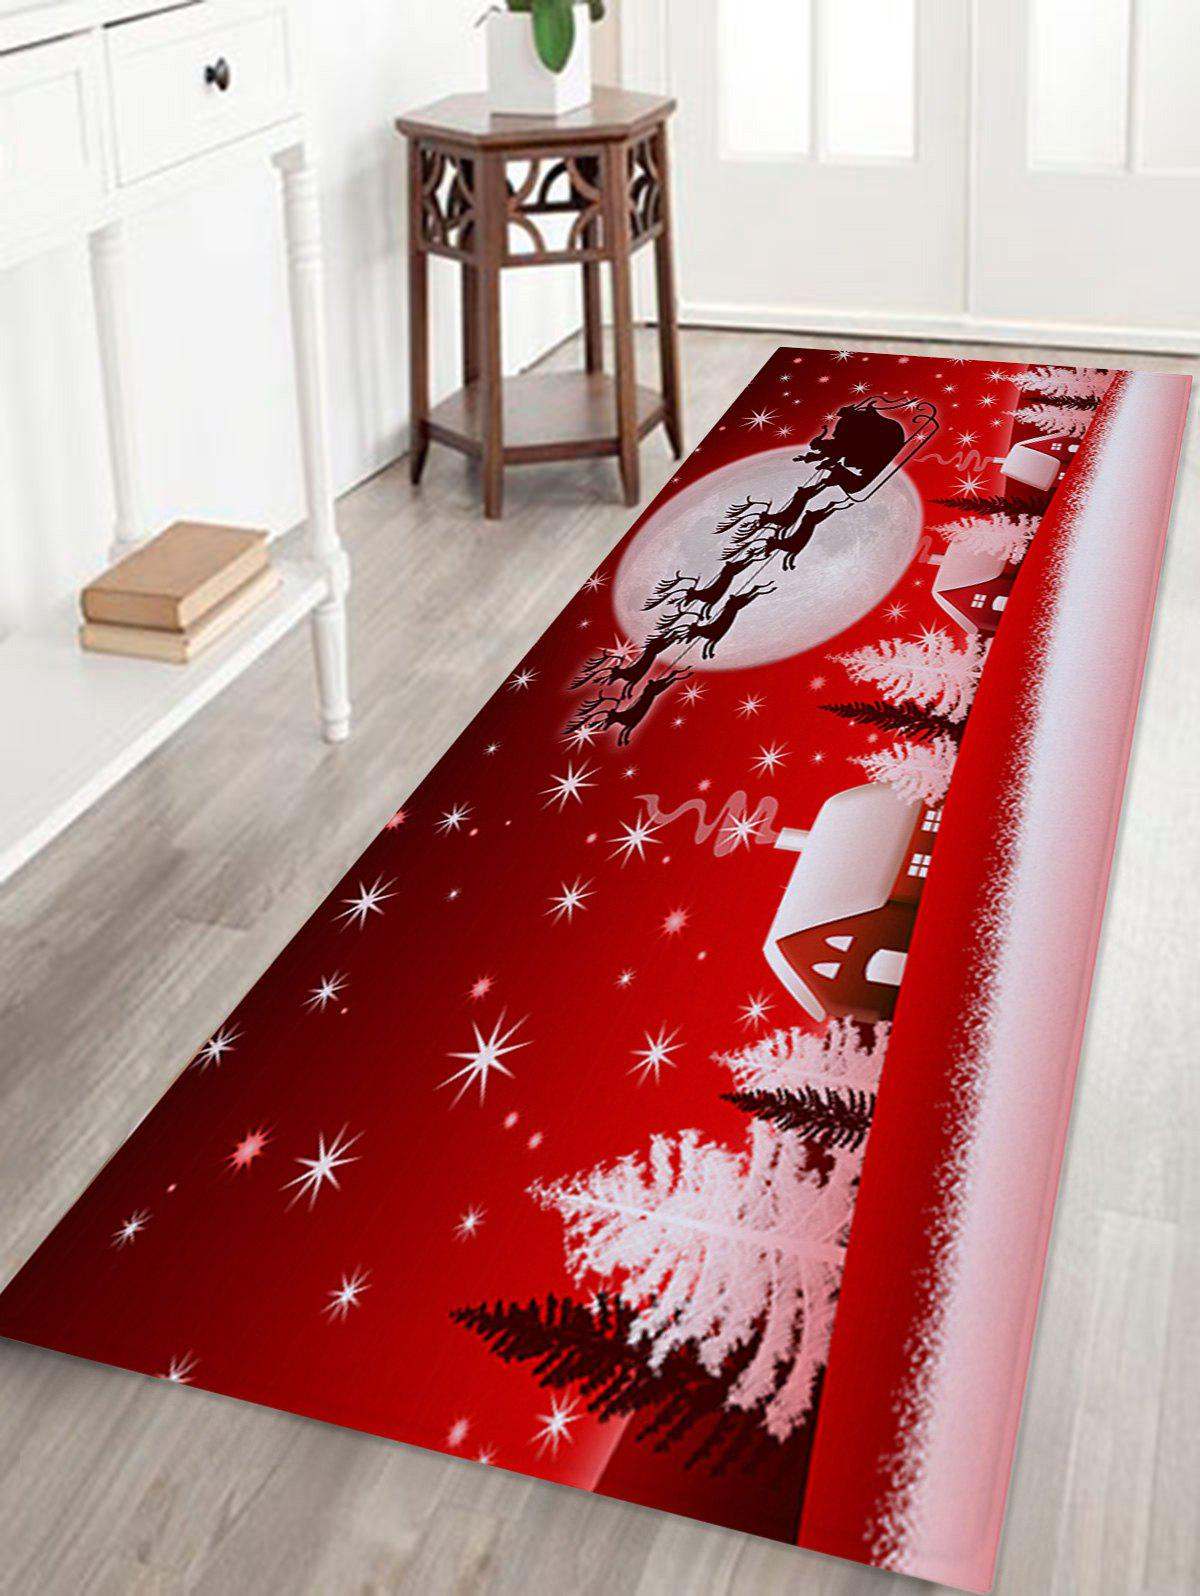 Christmas Sled Moon Print Coral Fleece Antiskid Bath RugHOME<br><br>Size: W24 INCH * L71 INCH; Color: RED; Products Type: Bath rugs; Materials: Coral FLeece; Style: Festival; Shape: Rectangular; Package Contents: 1 x Rug;